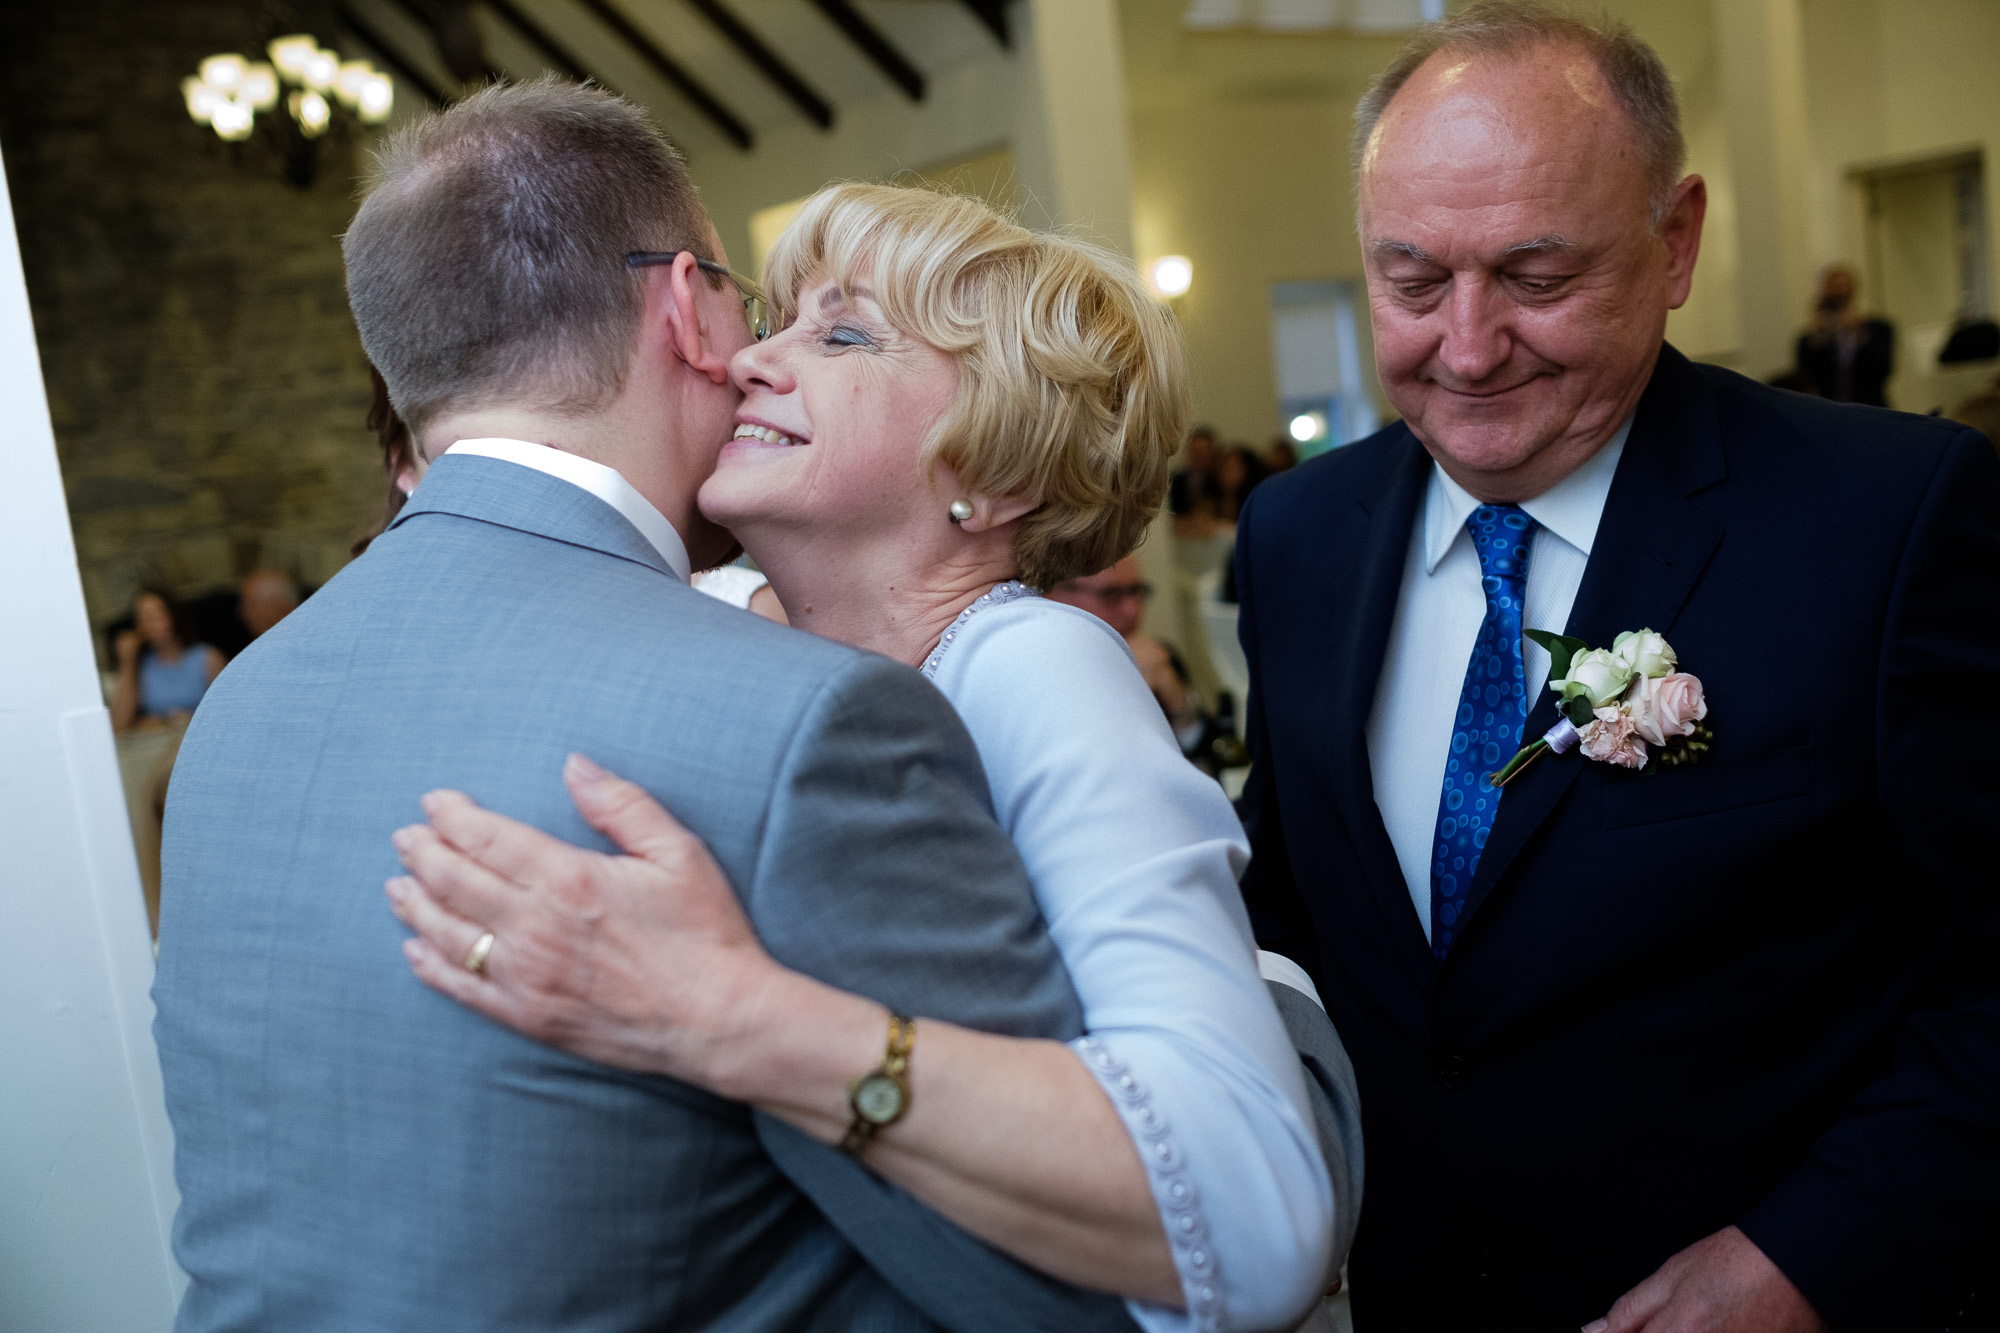 The groom give his mom a hug after her wedding toast during the wedding reception at the Glenerin Inn outside of Toronto